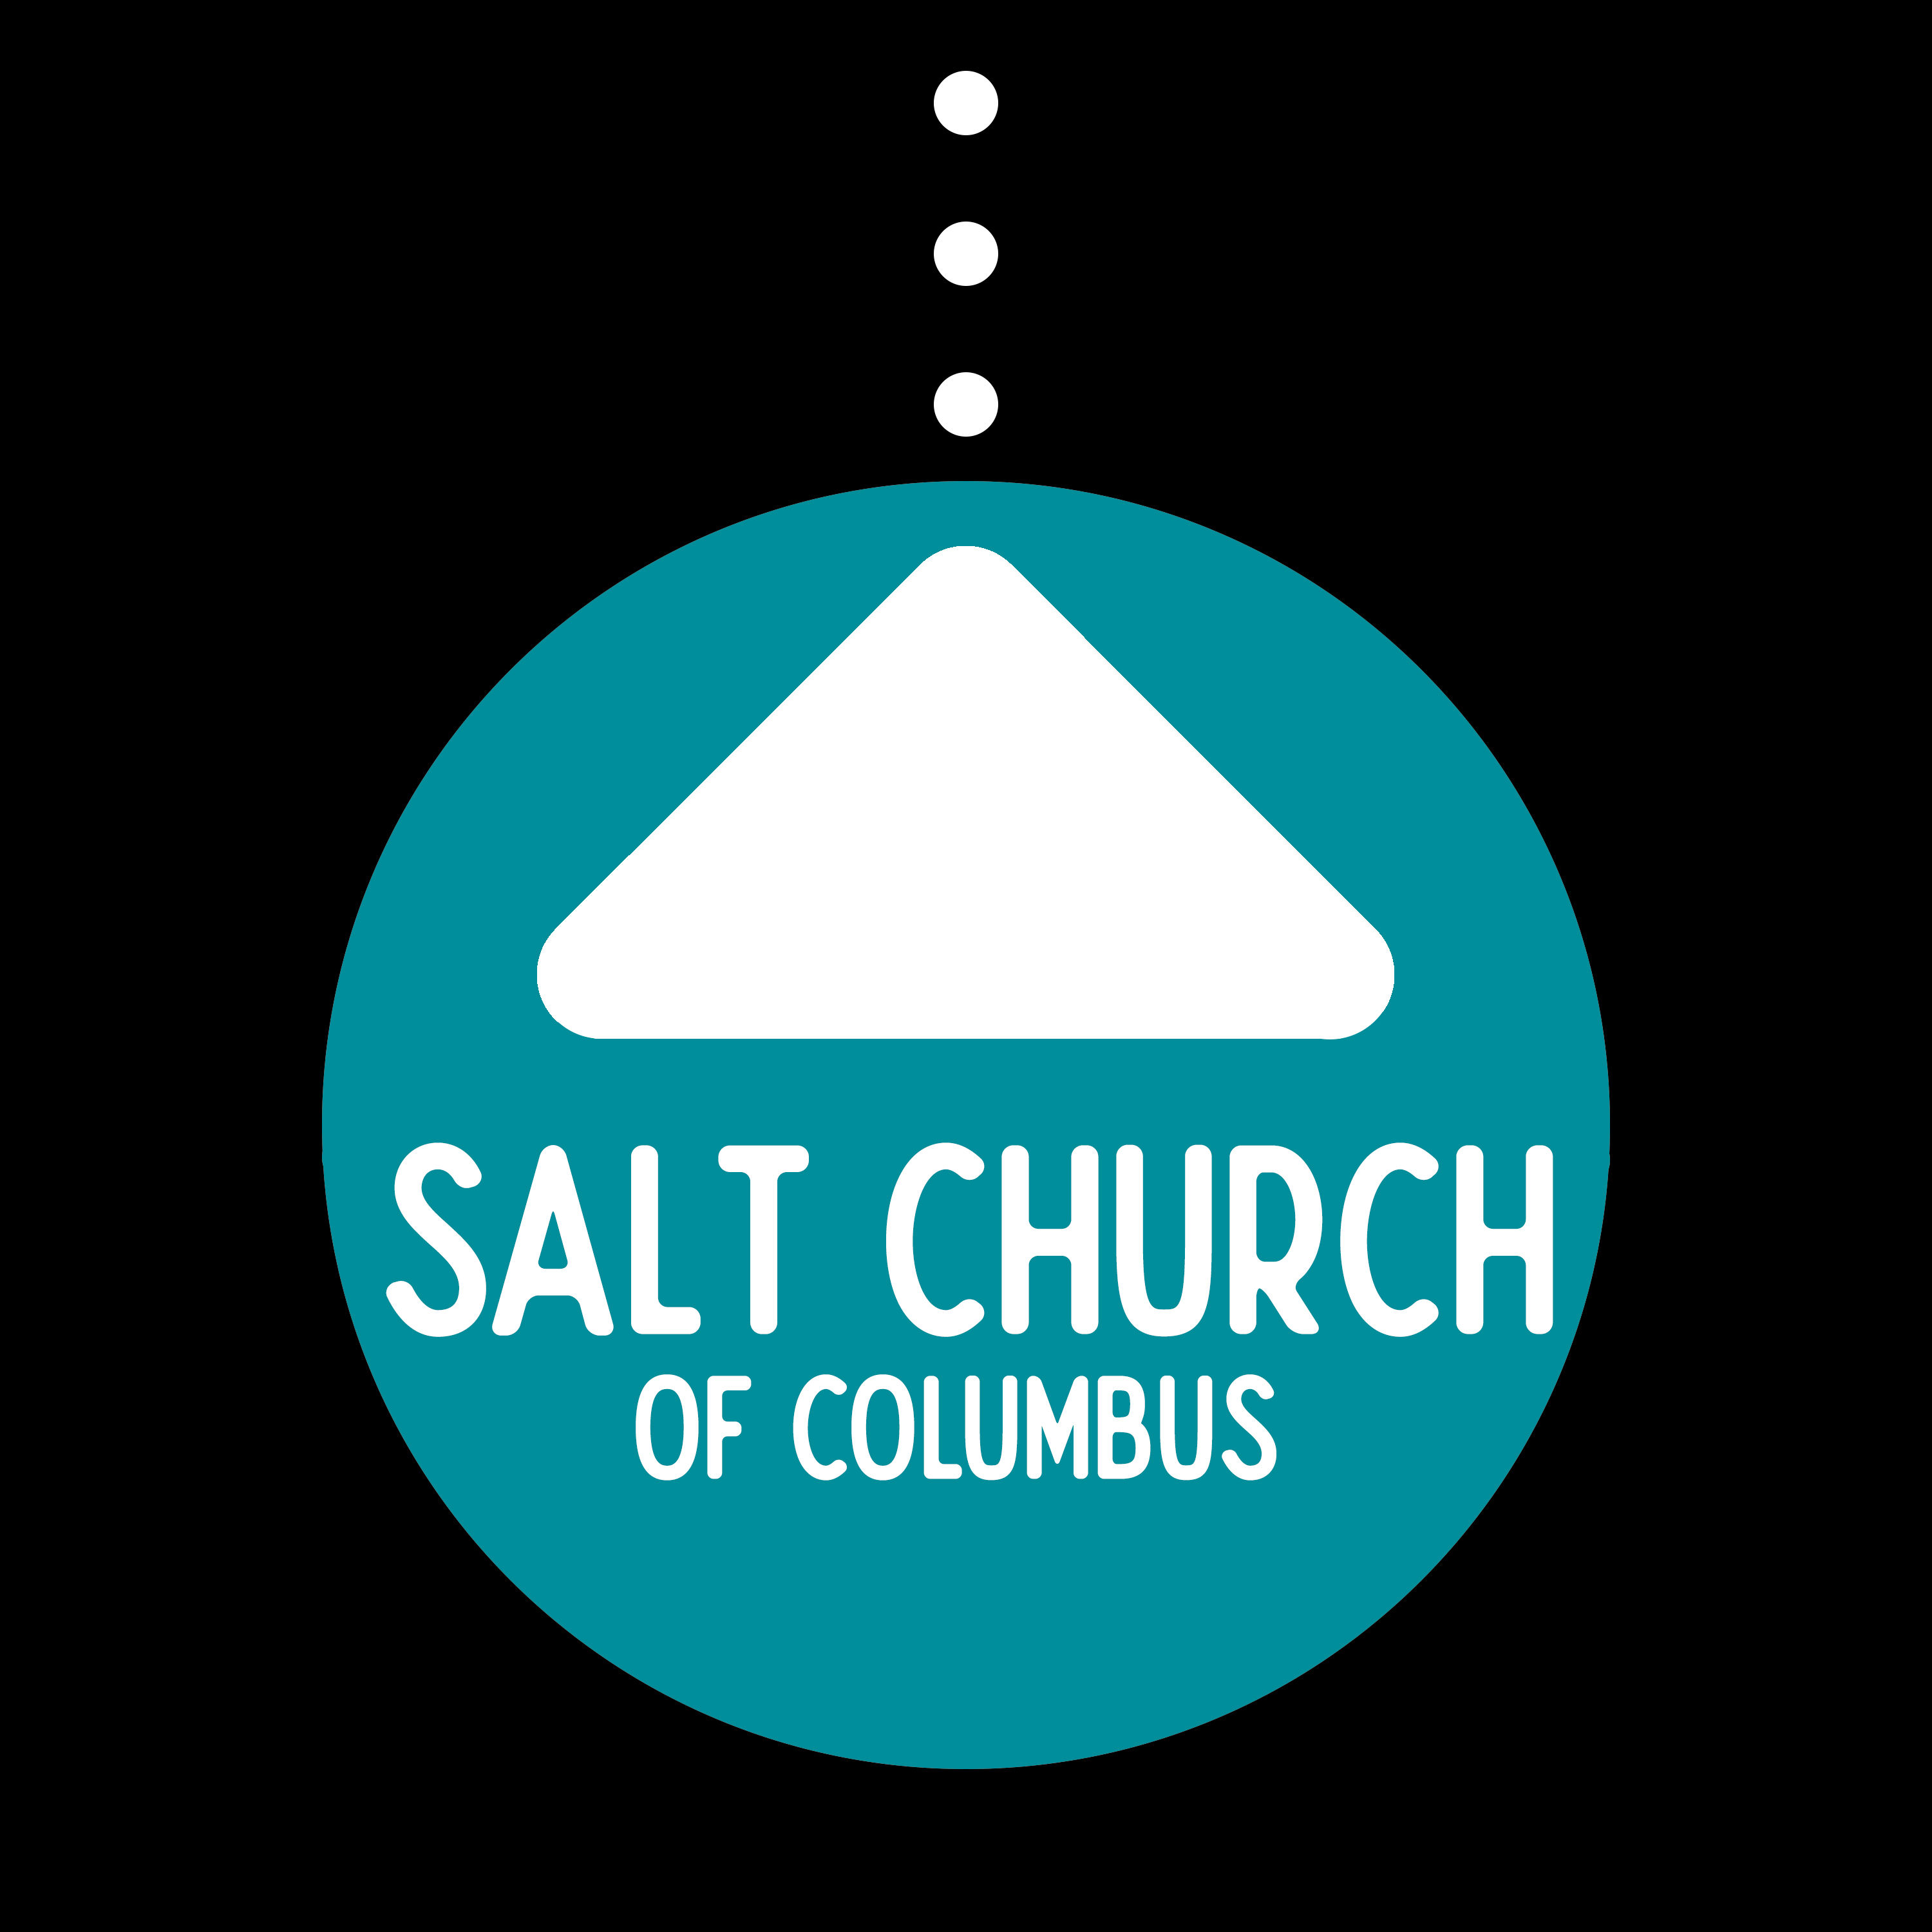 Salt Church of Columbus